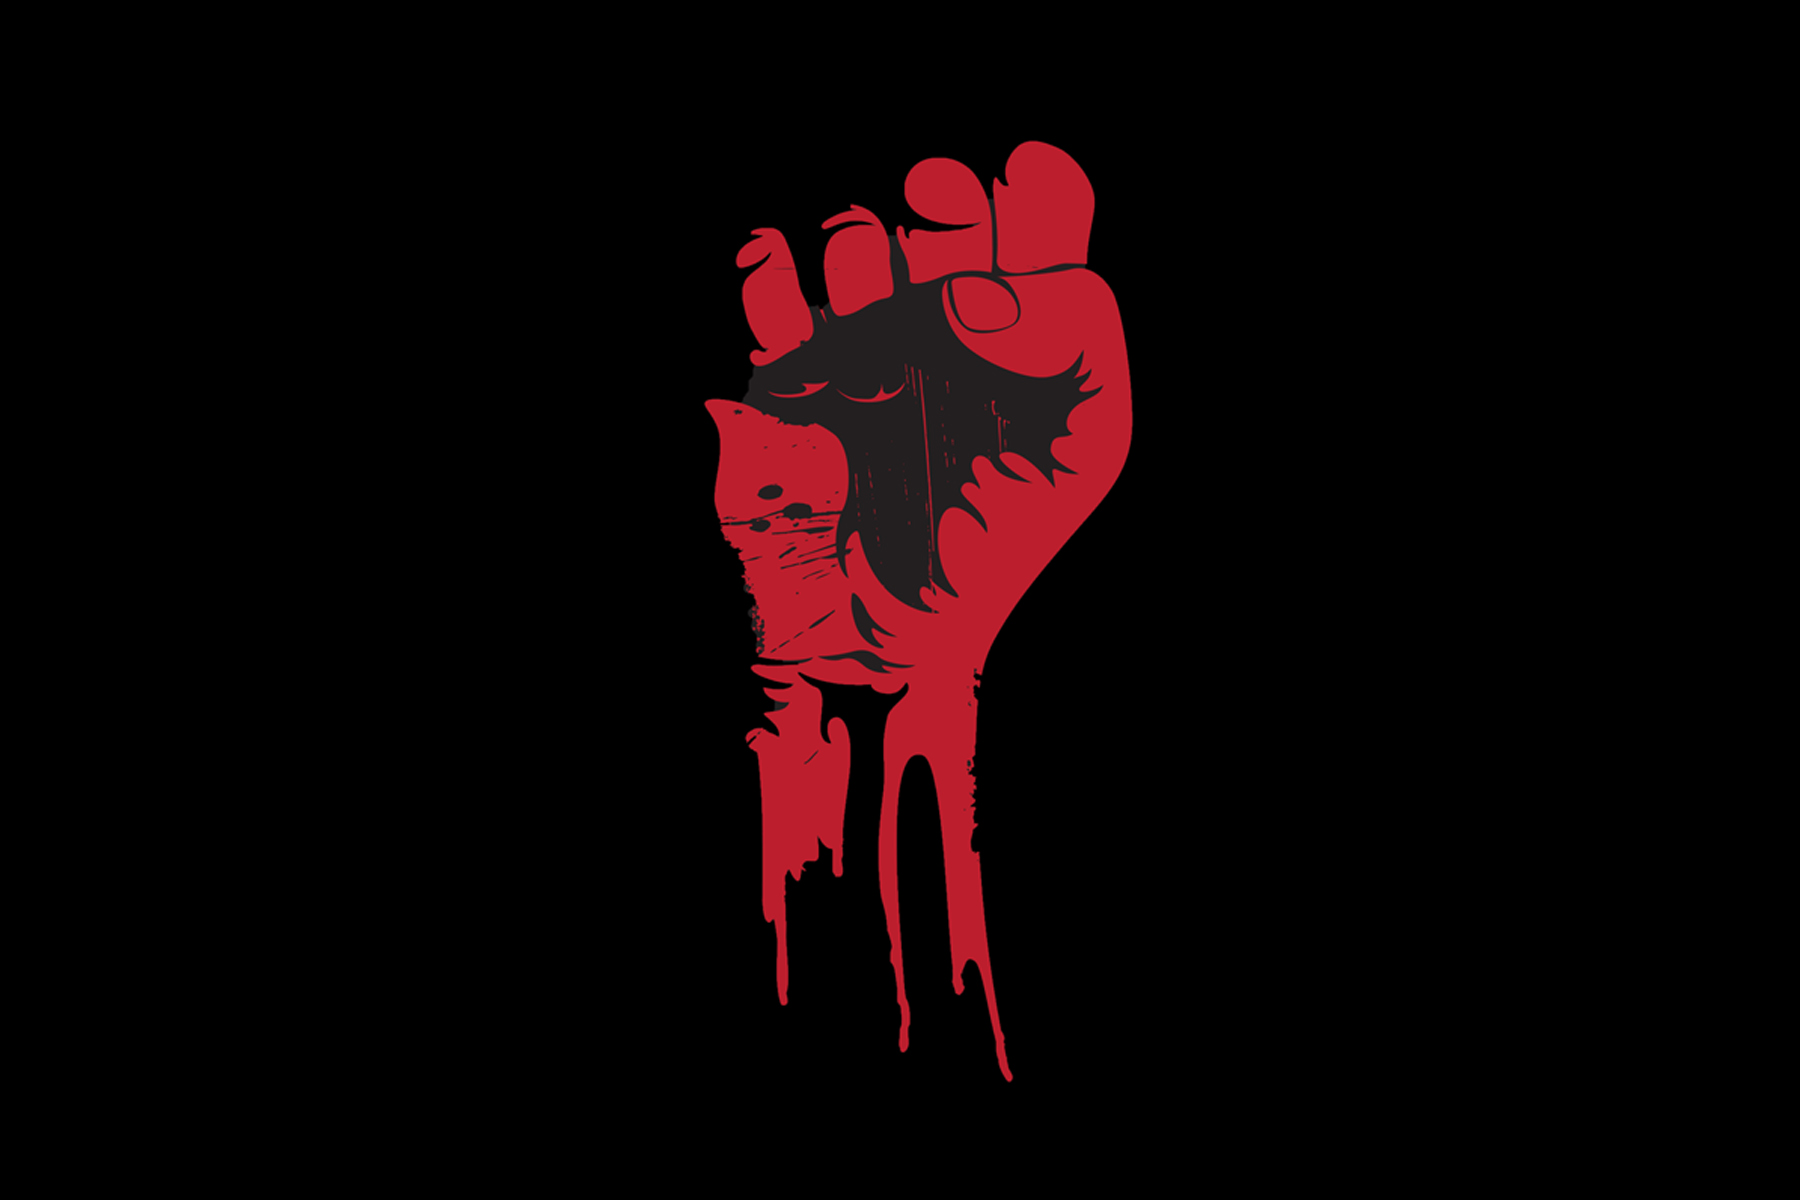 red-protest-fist